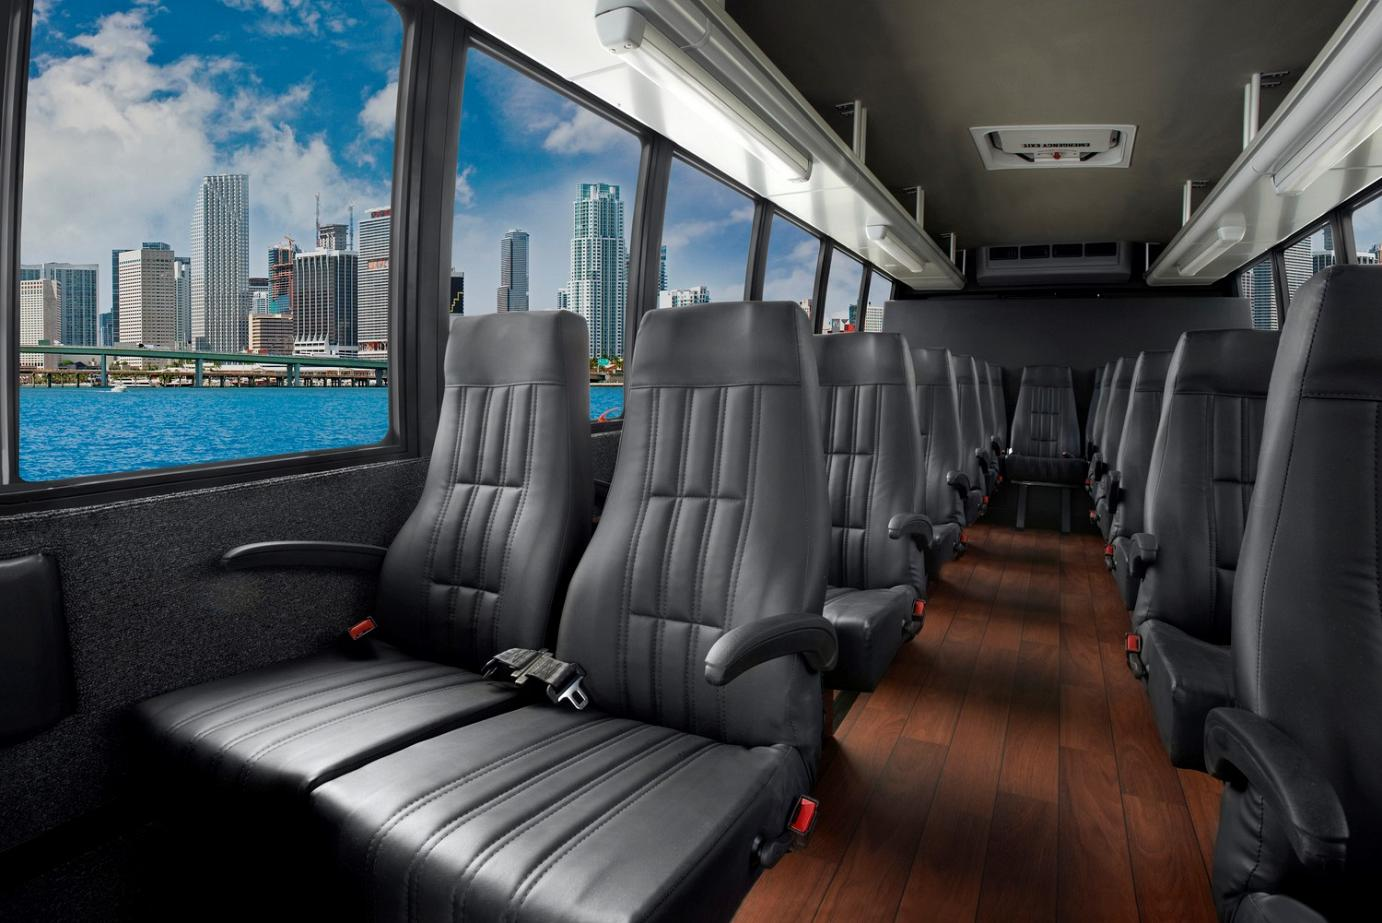 Chicago Limo Service - 25 passenger Mini Buses - interior